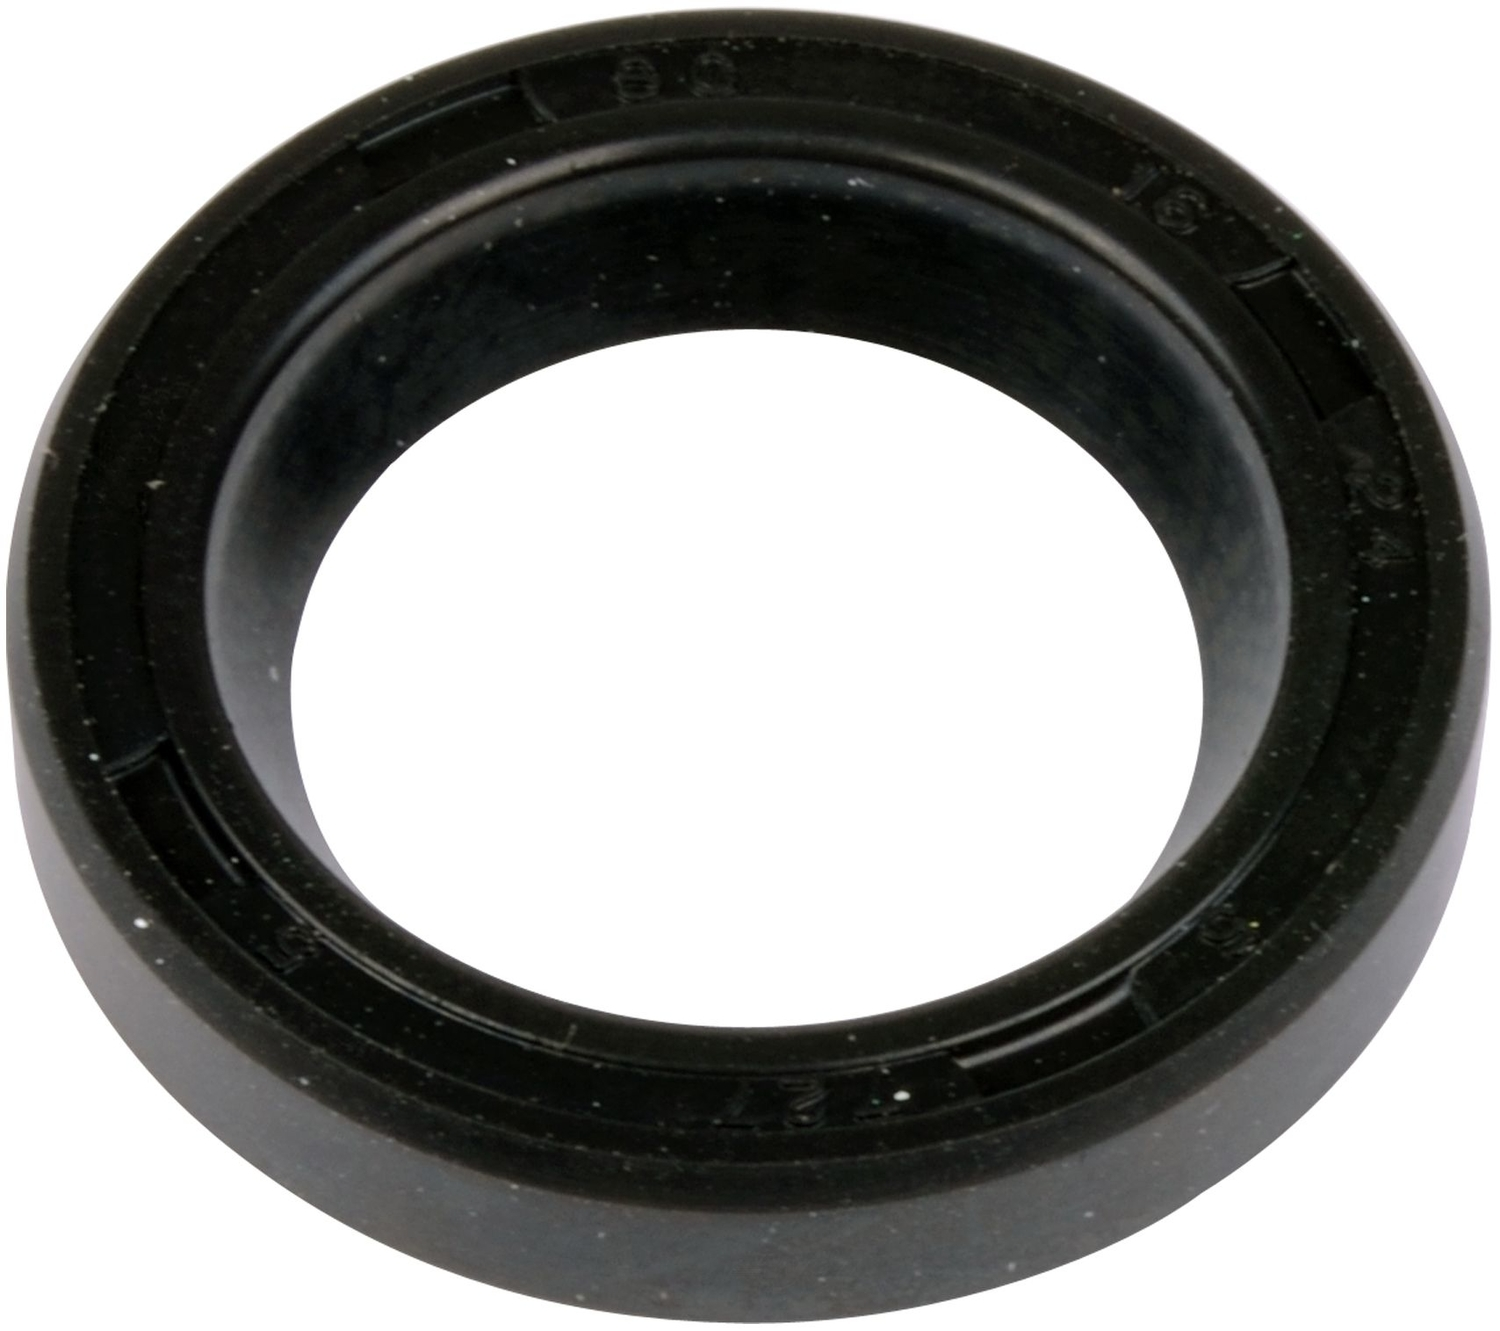 SKF (CHICAGO RAWHIDE) - Manual Trans Shift Shaft Seal - SKF 552504